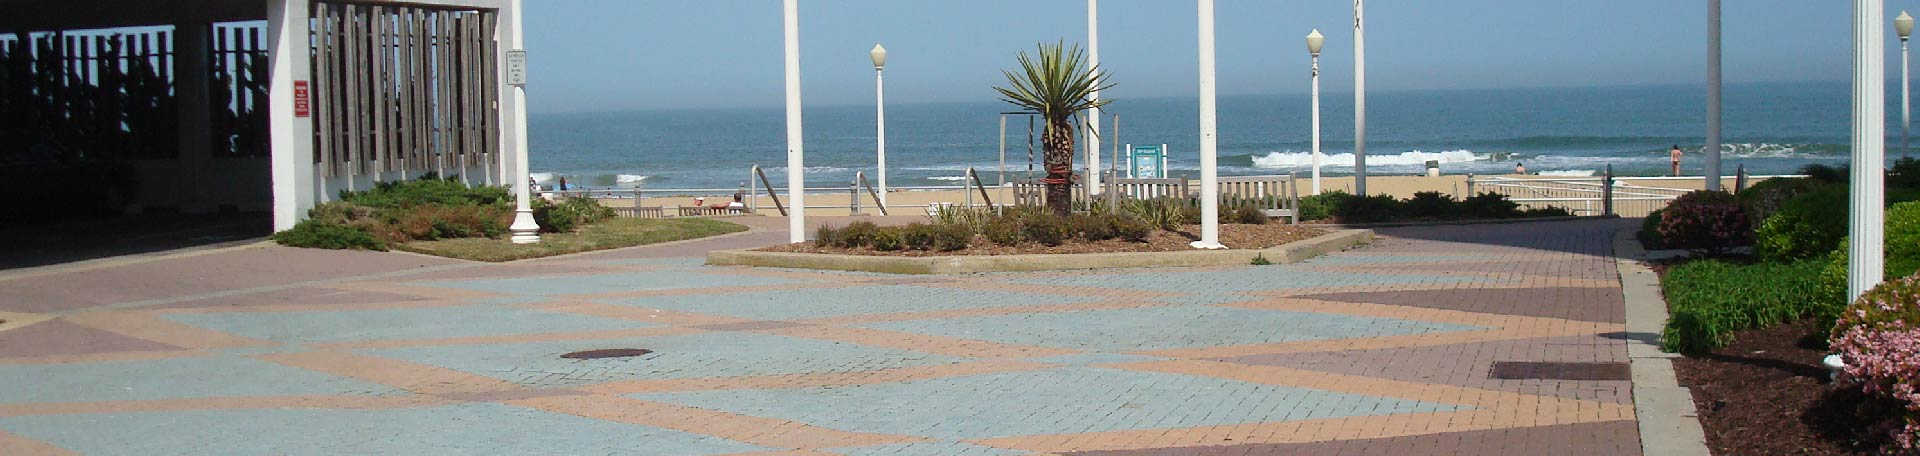 boardwalk paver design